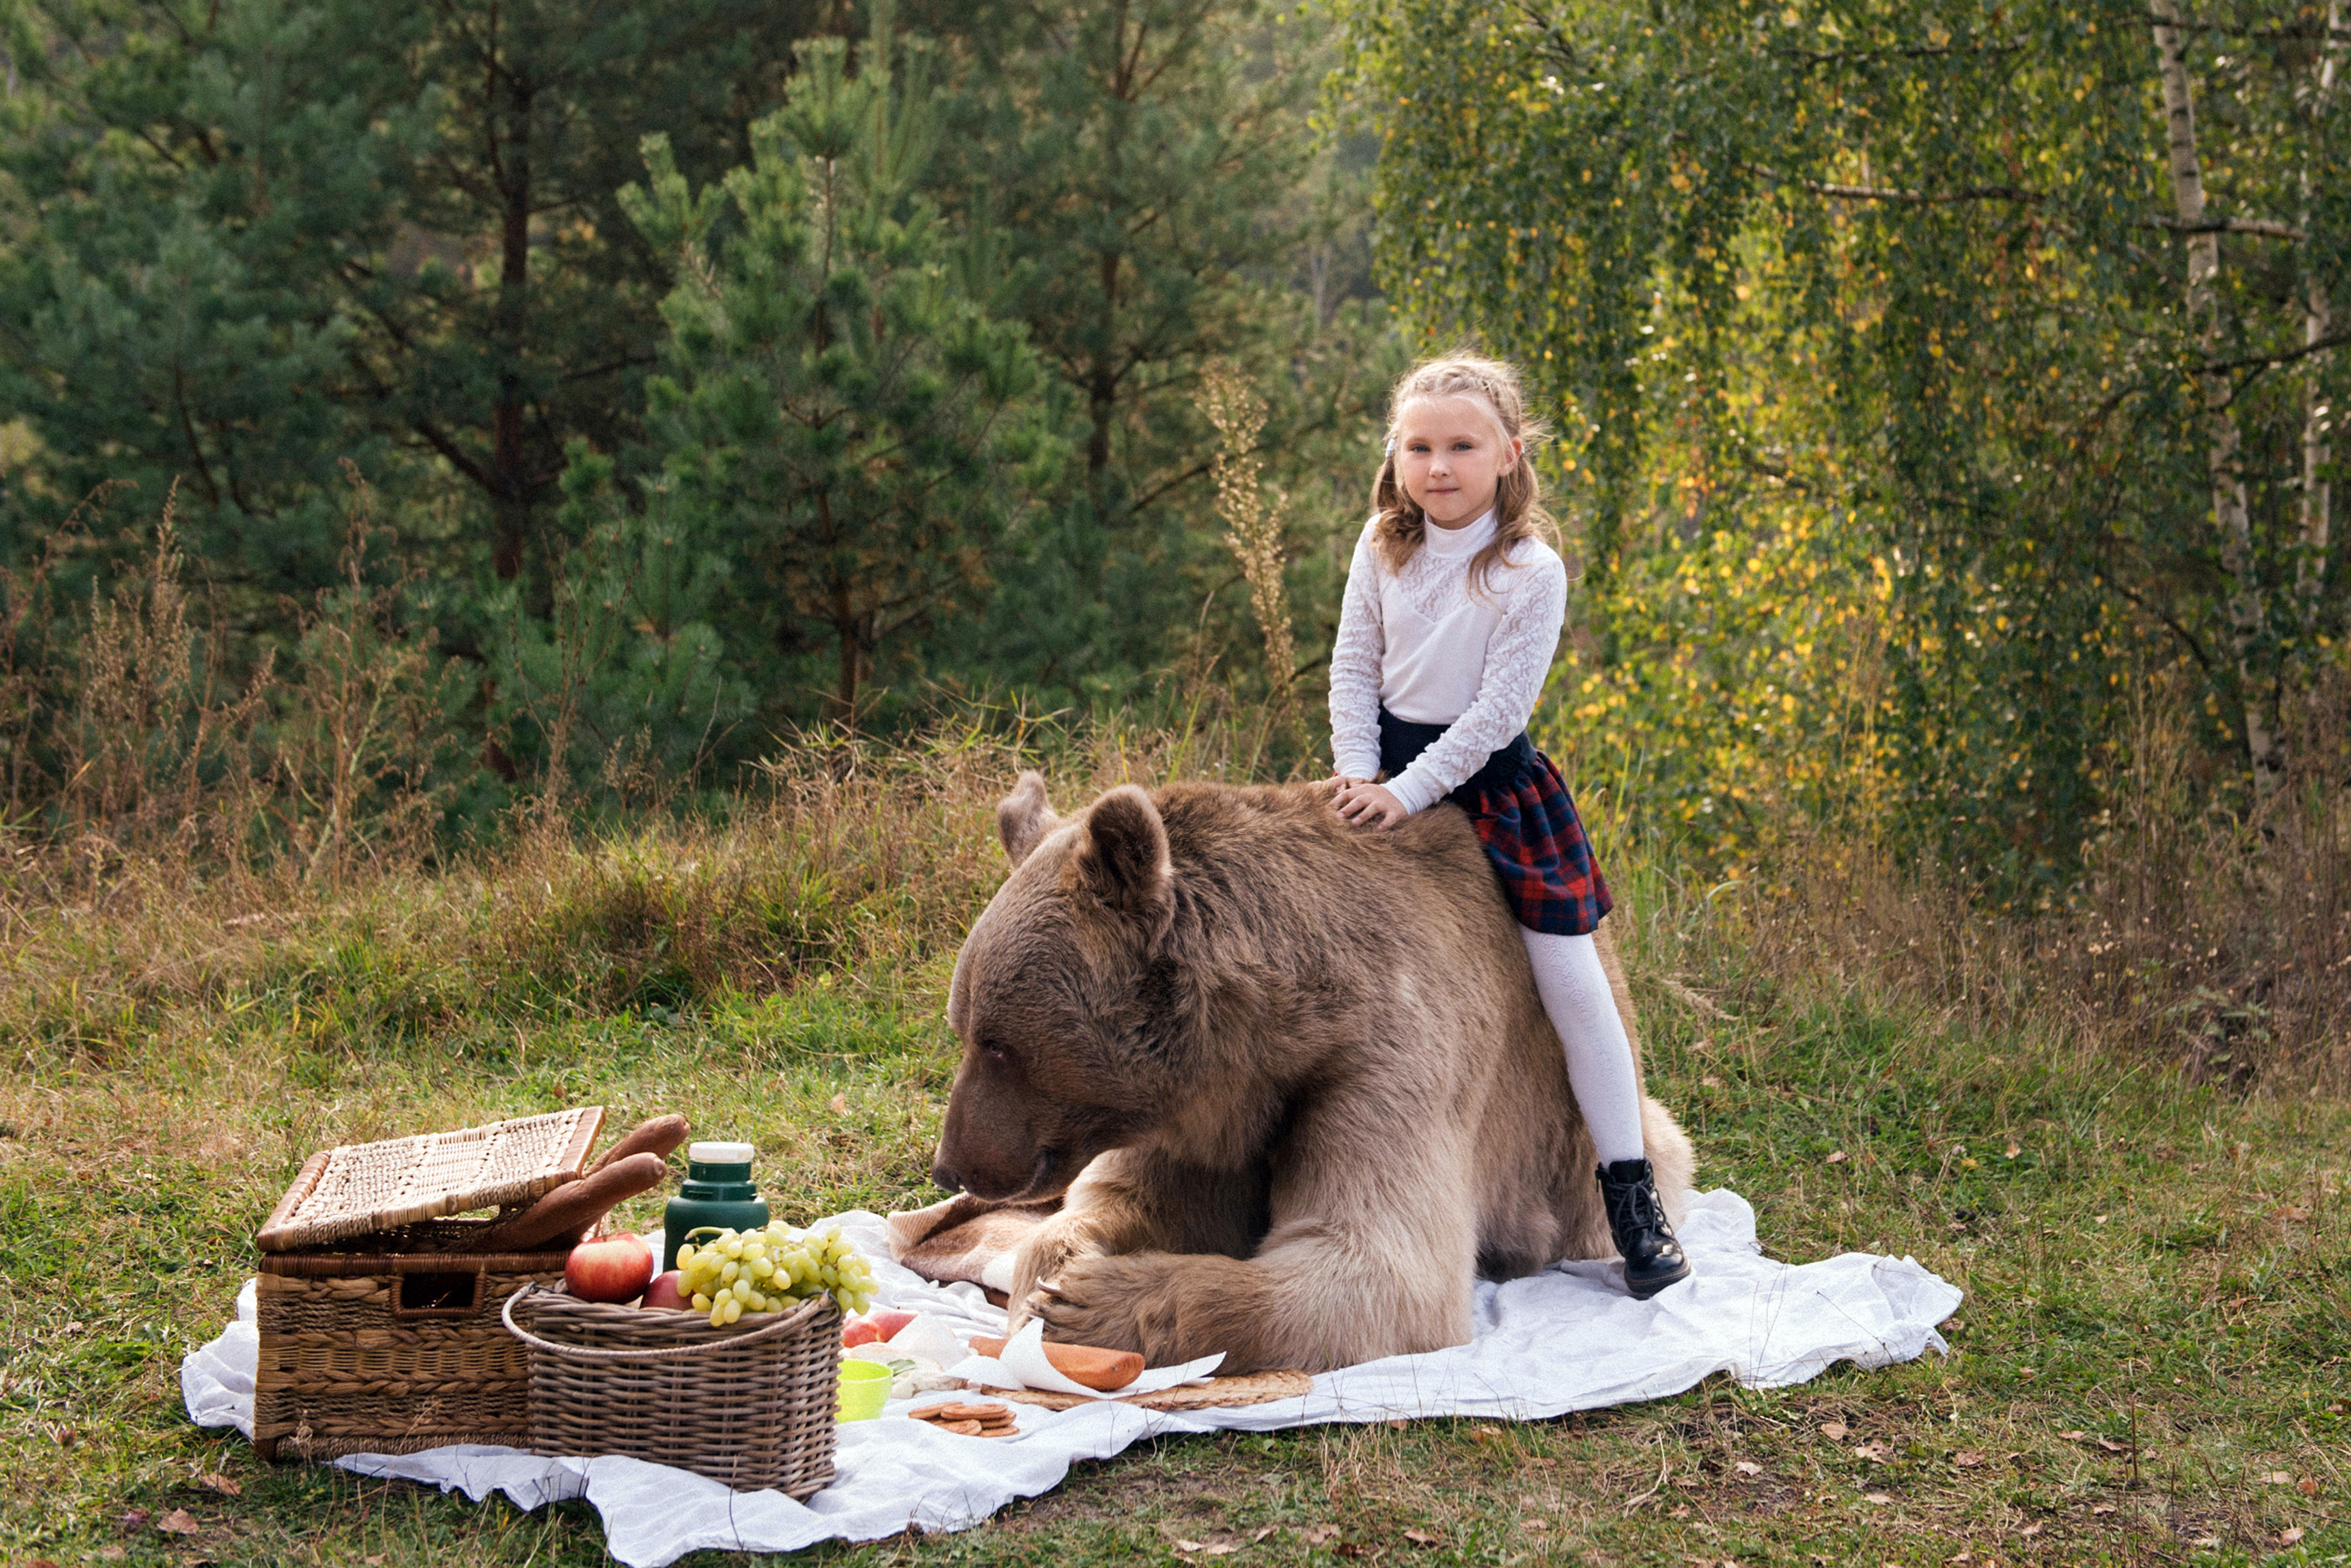 Katya was hesitant around the grizzly bear at first but quickly warmed up to it.